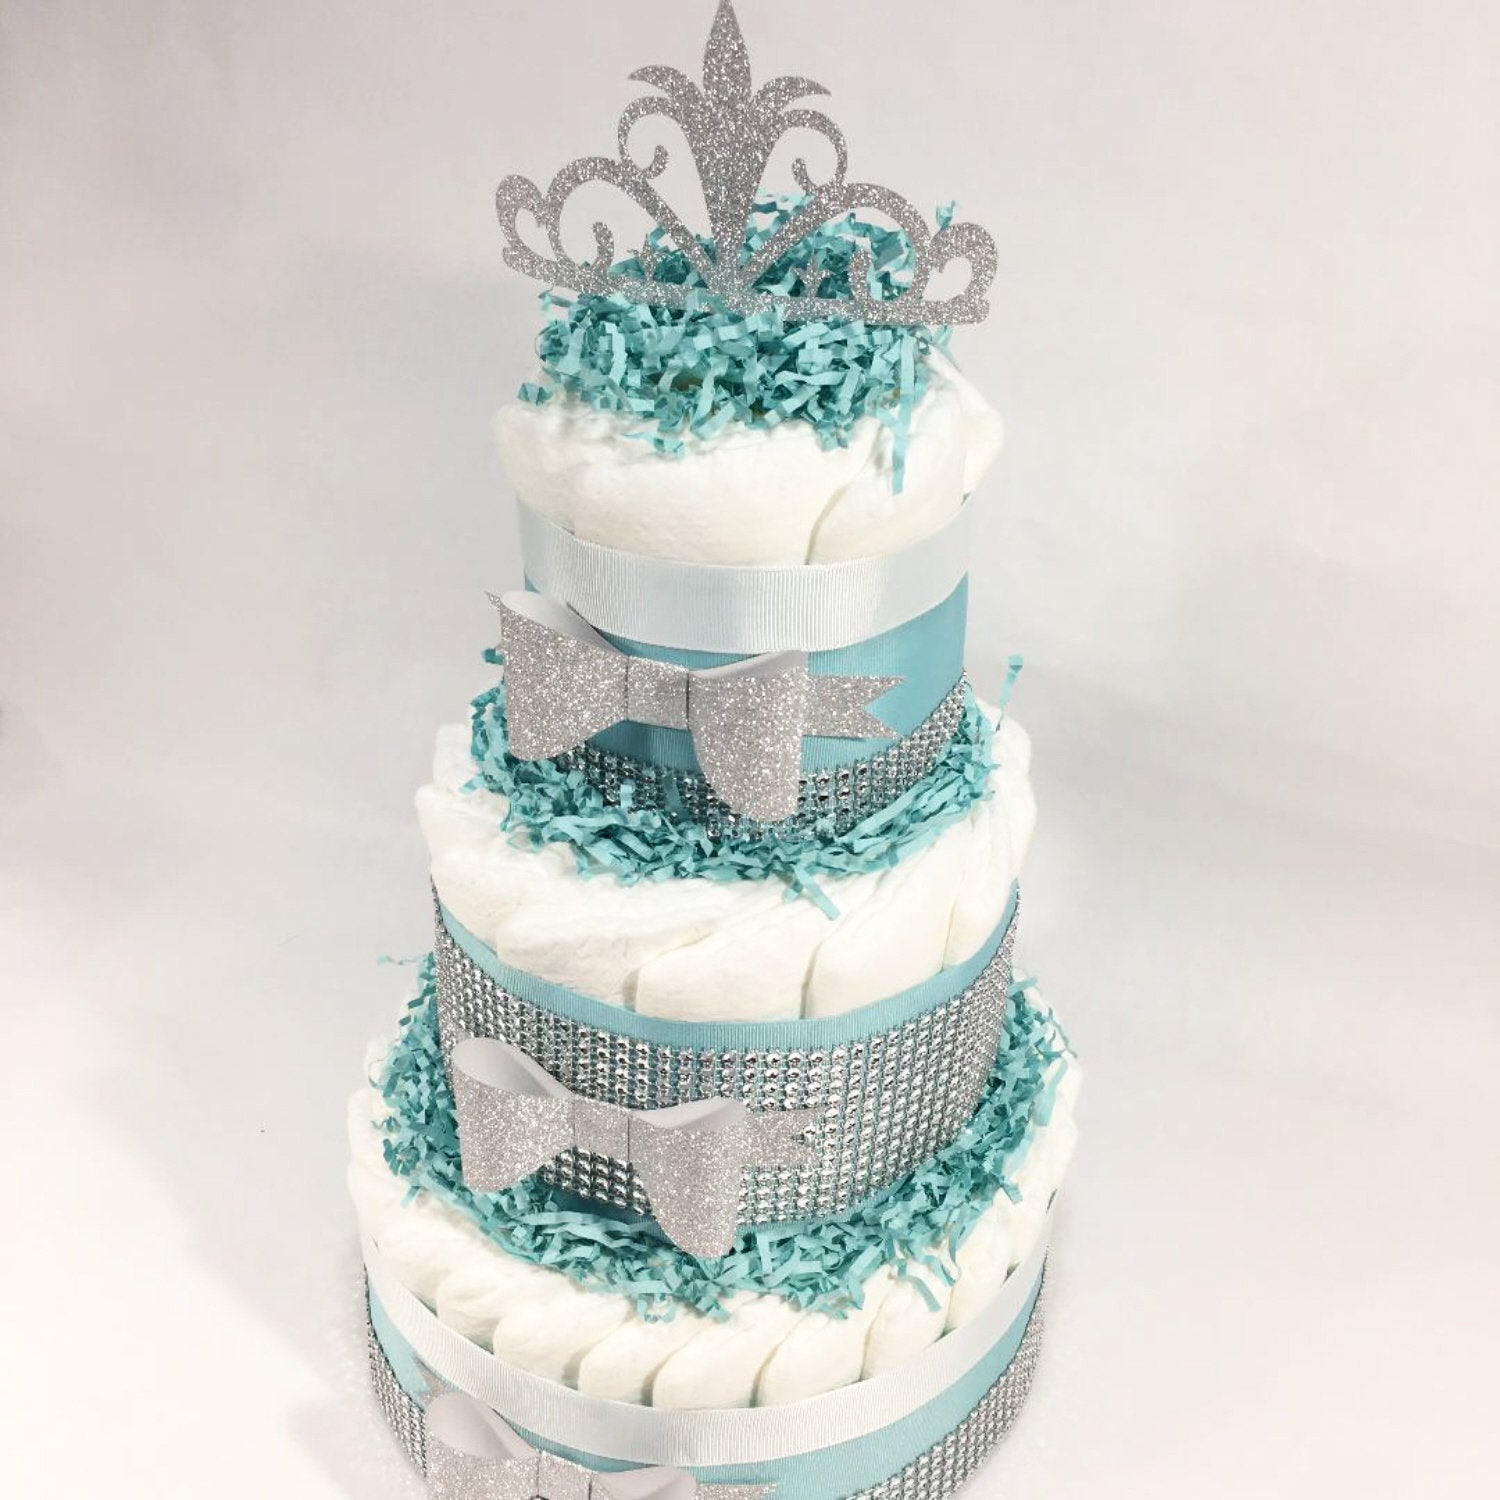 Baby /& Co Shower Diaper Cake Centerpiece Robin Egg Blue Bling w White Bows Pearl Box as Cake Topper 3 Tier 60 Diapers Included